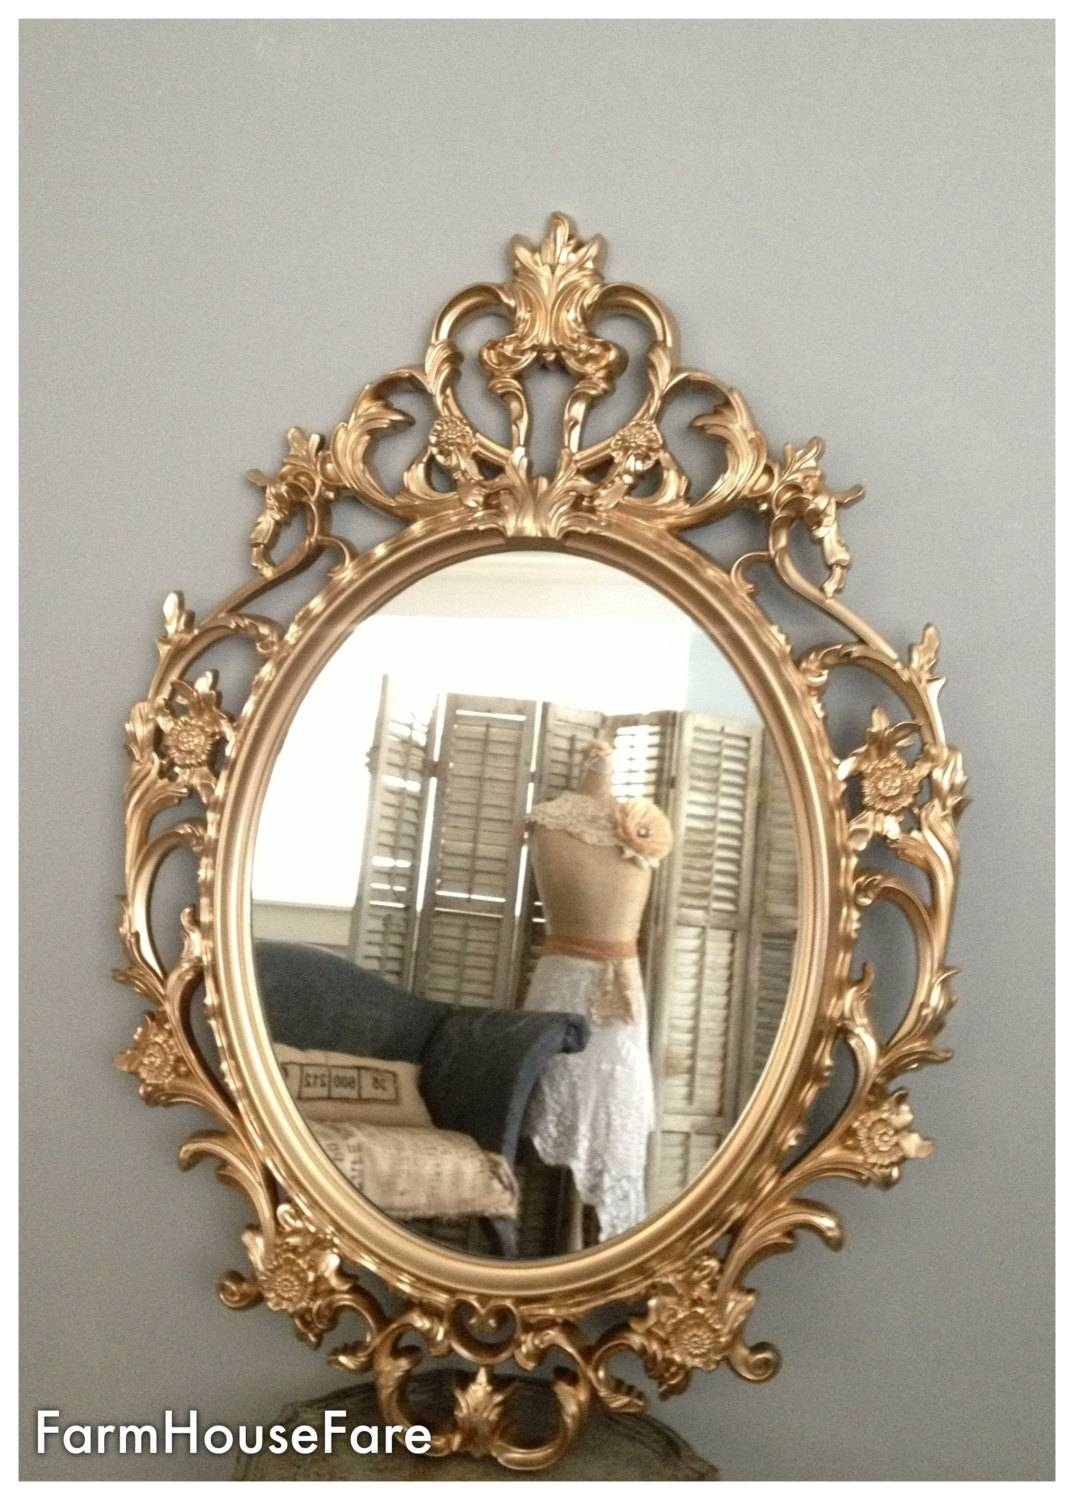 Ornate Mirrors Baroque Mirror Large Gold Wall Mirror throughout Baroque Wall Mirrors (Image 11 of 15)